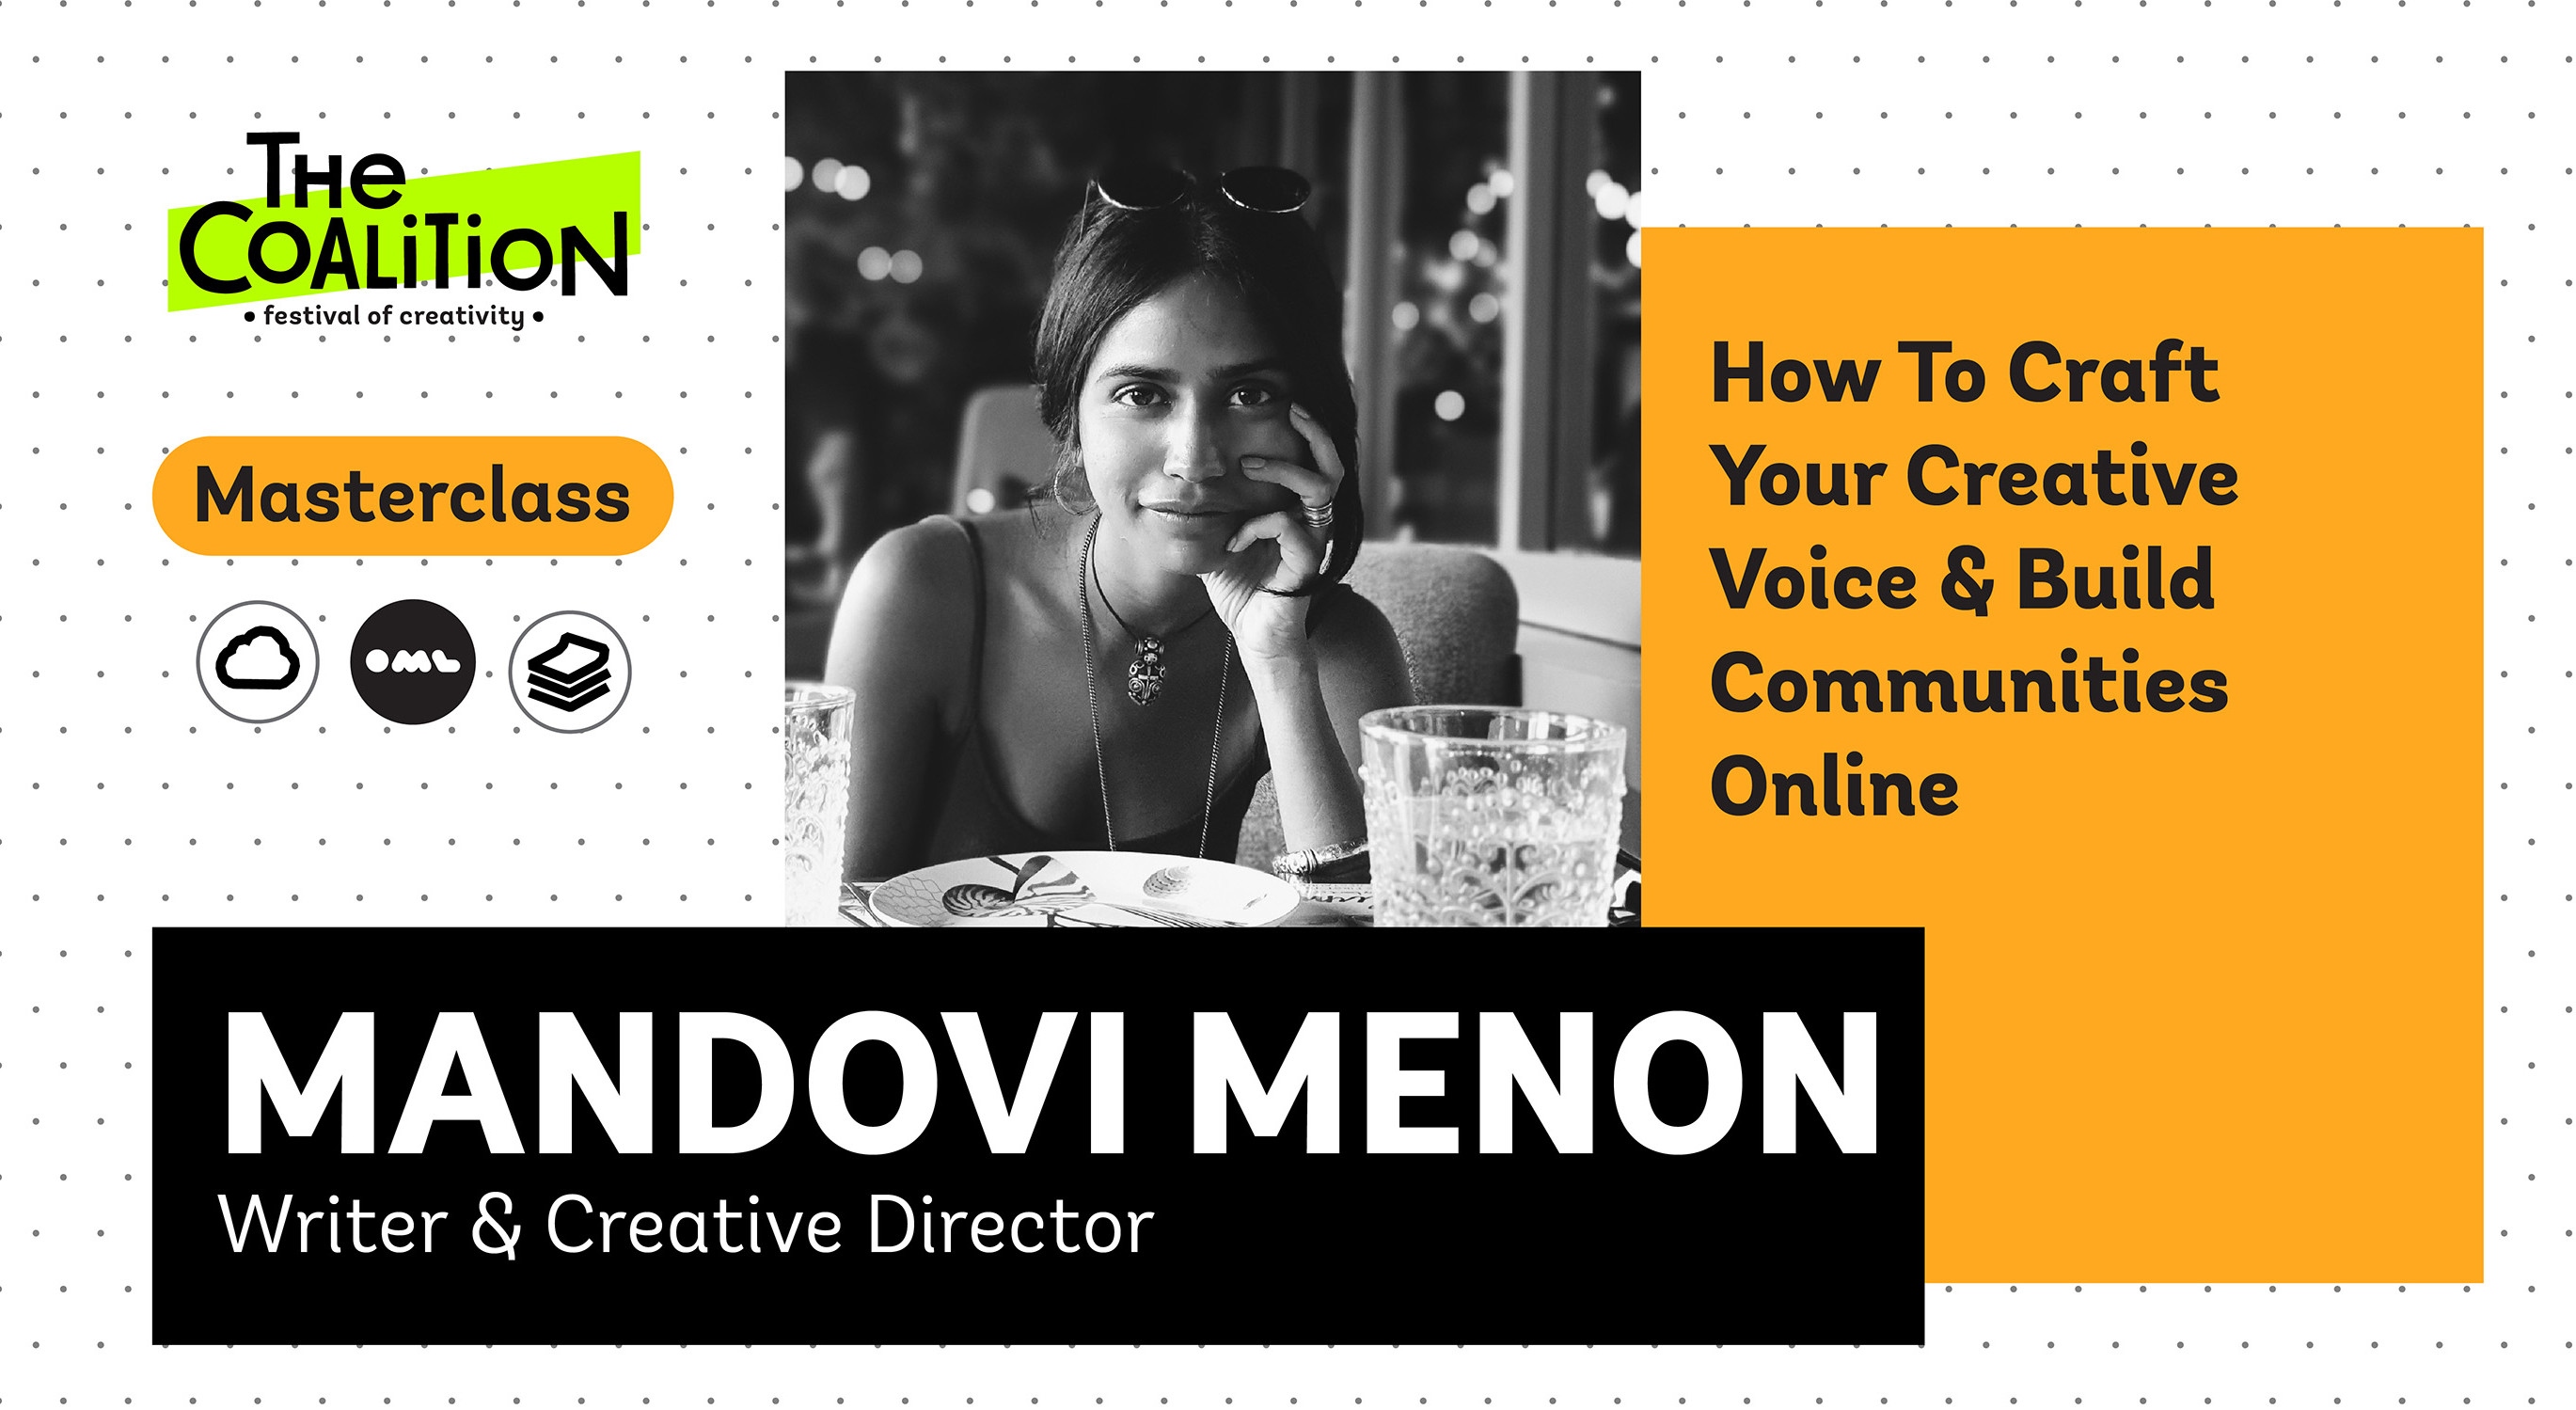 TC Masterclass: How To Craft Your Creative Voice & Build Communities Online with Mandovi Menon